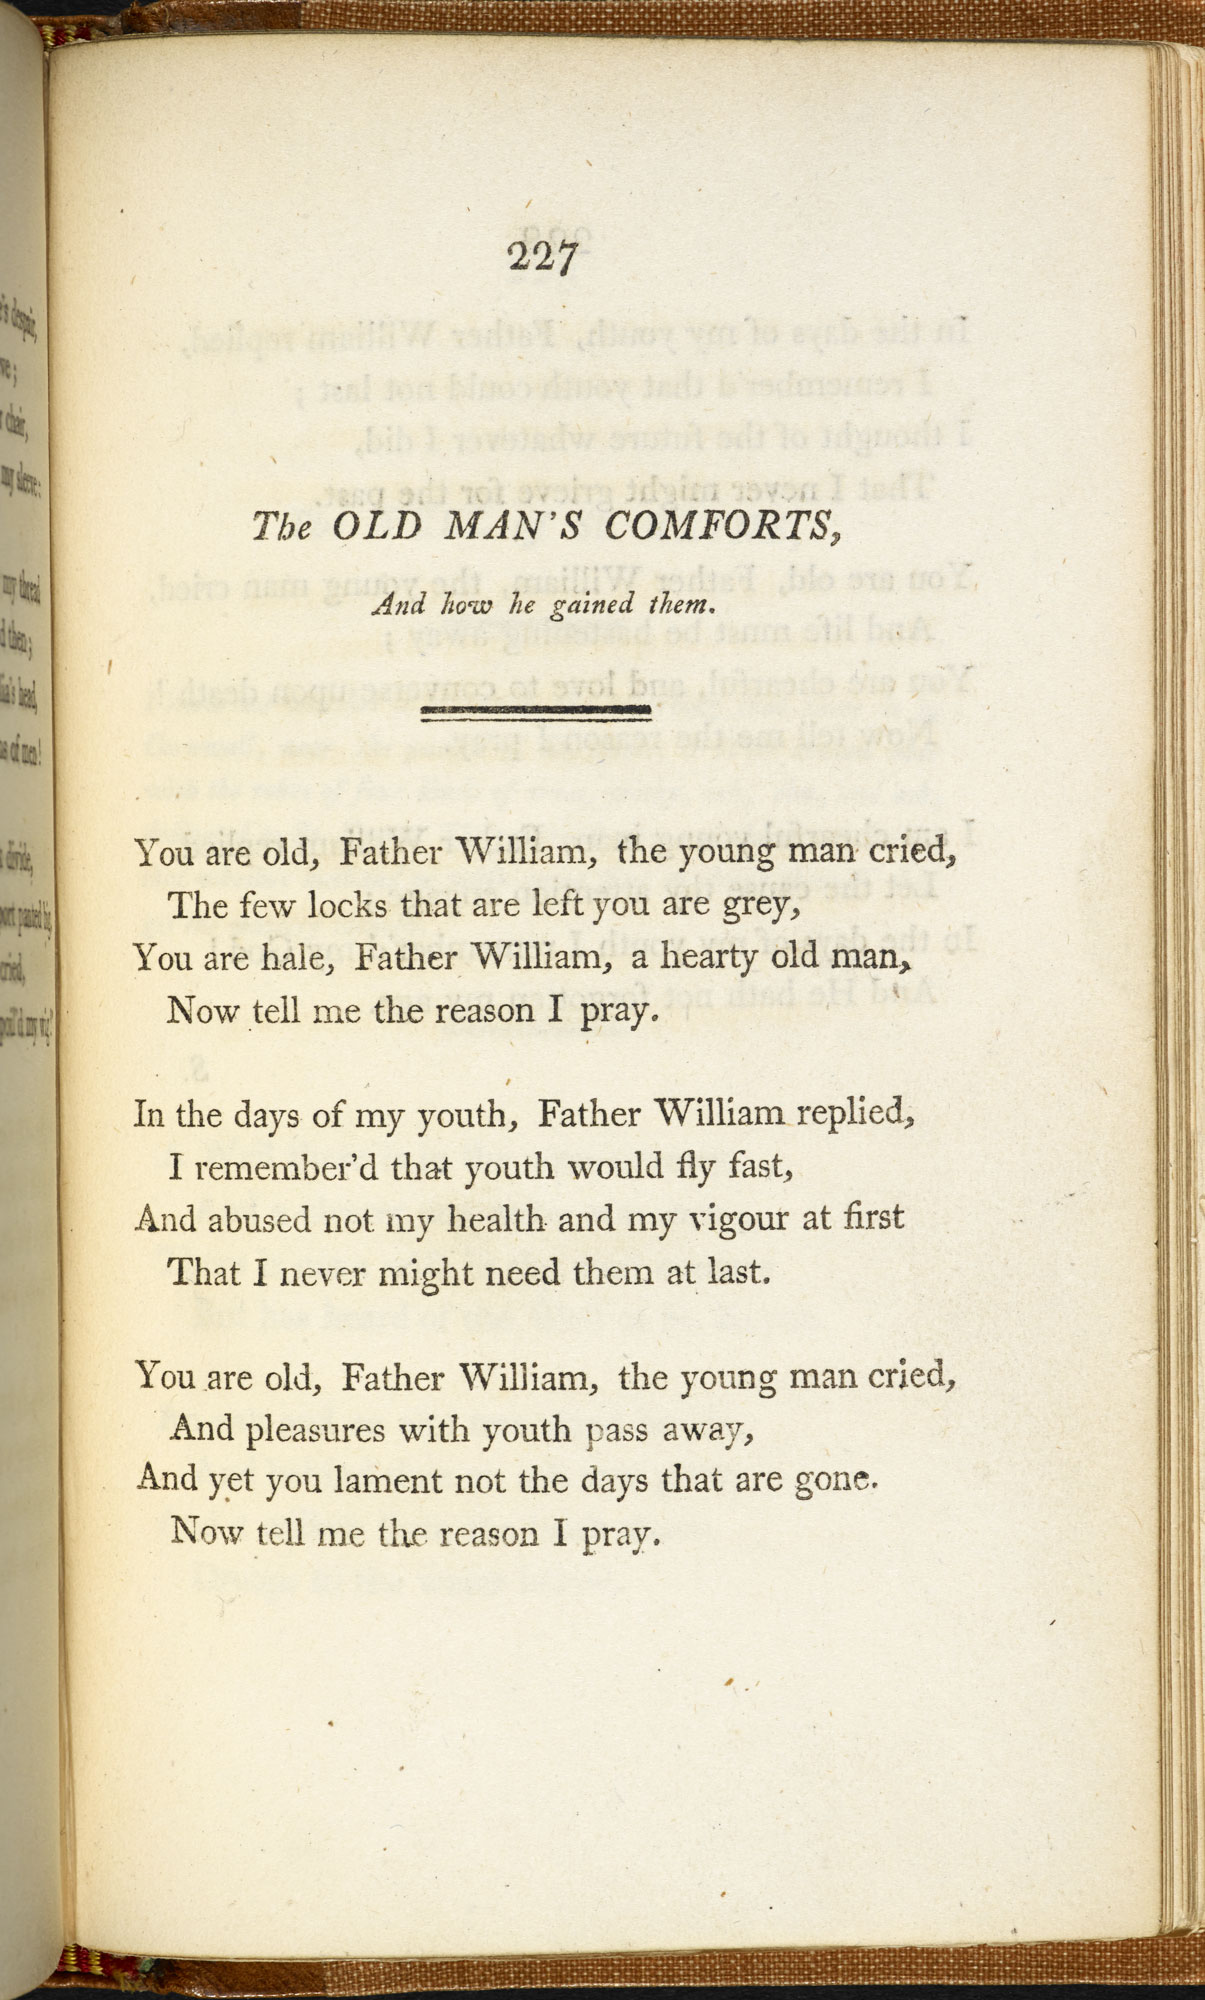 The Old Man's Comforts' by Robert Southey from The Annual Anthology [page: 227]